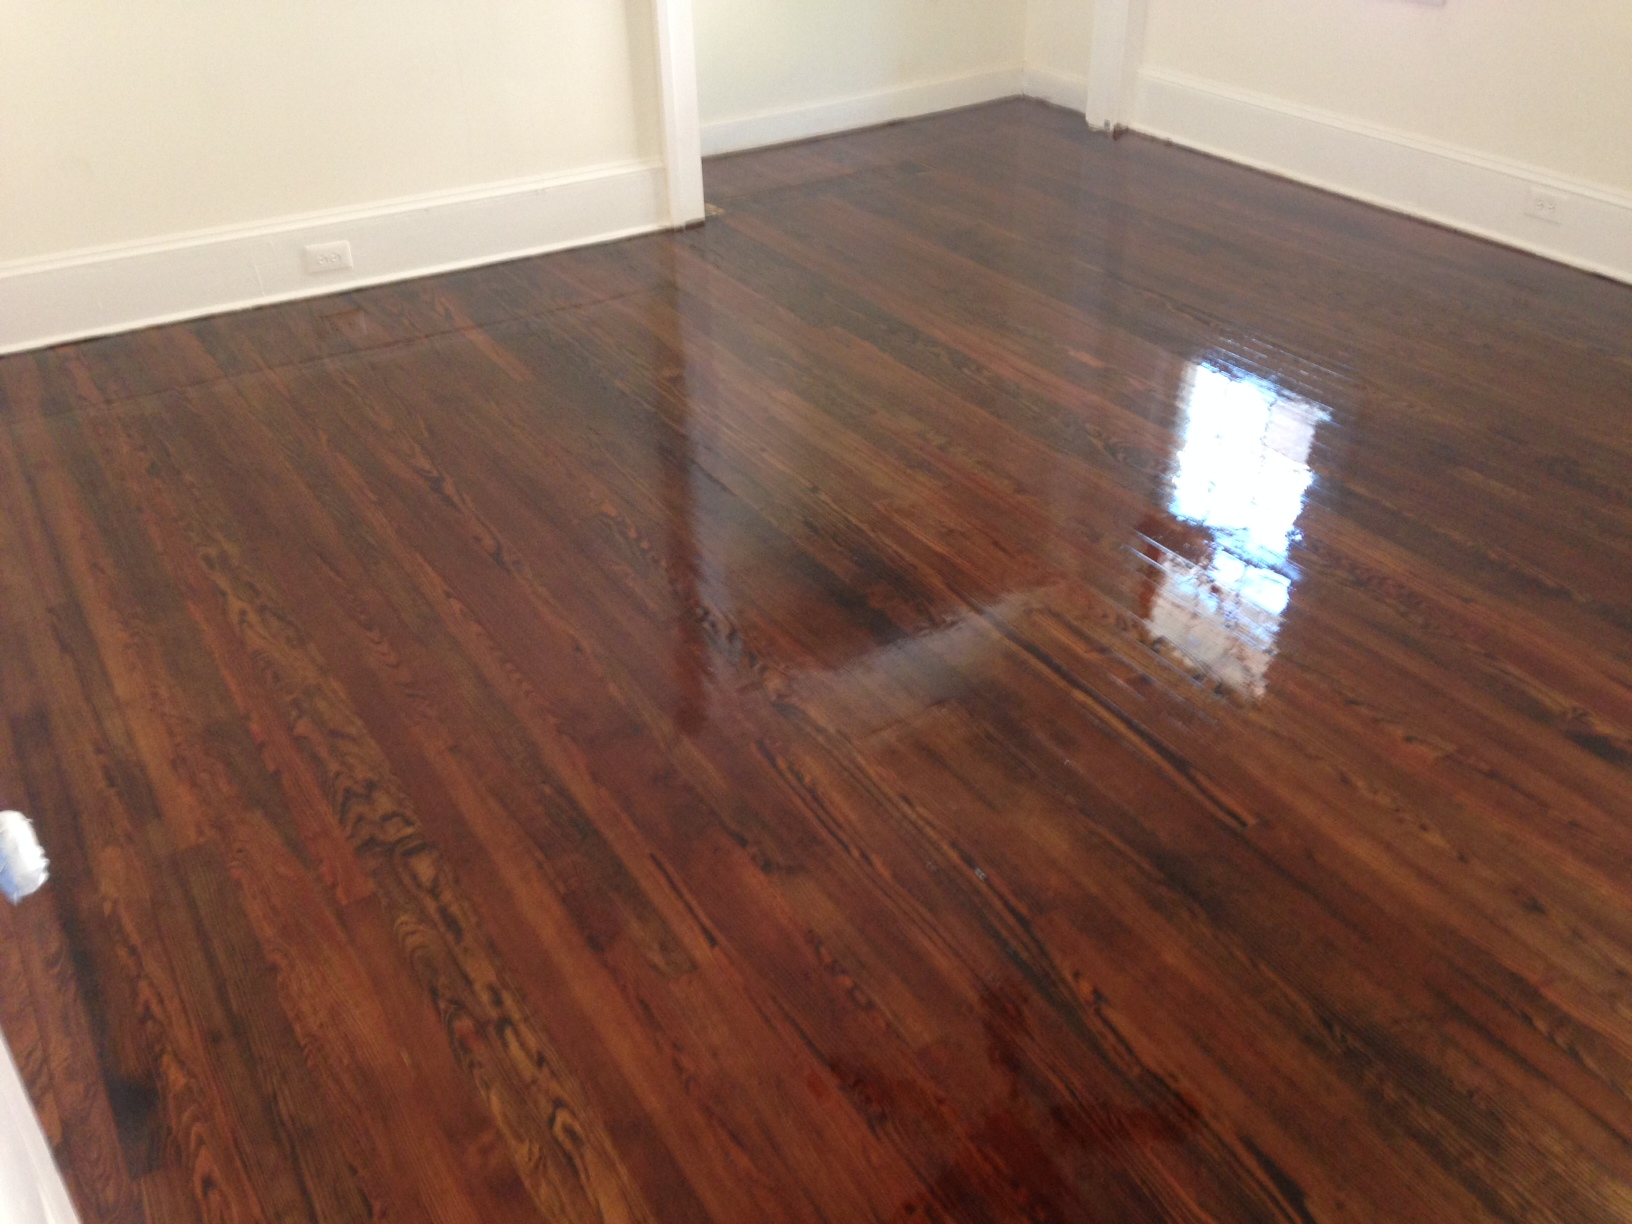 Refinish an old wood floor thefloors co for Resurfacing wood floors